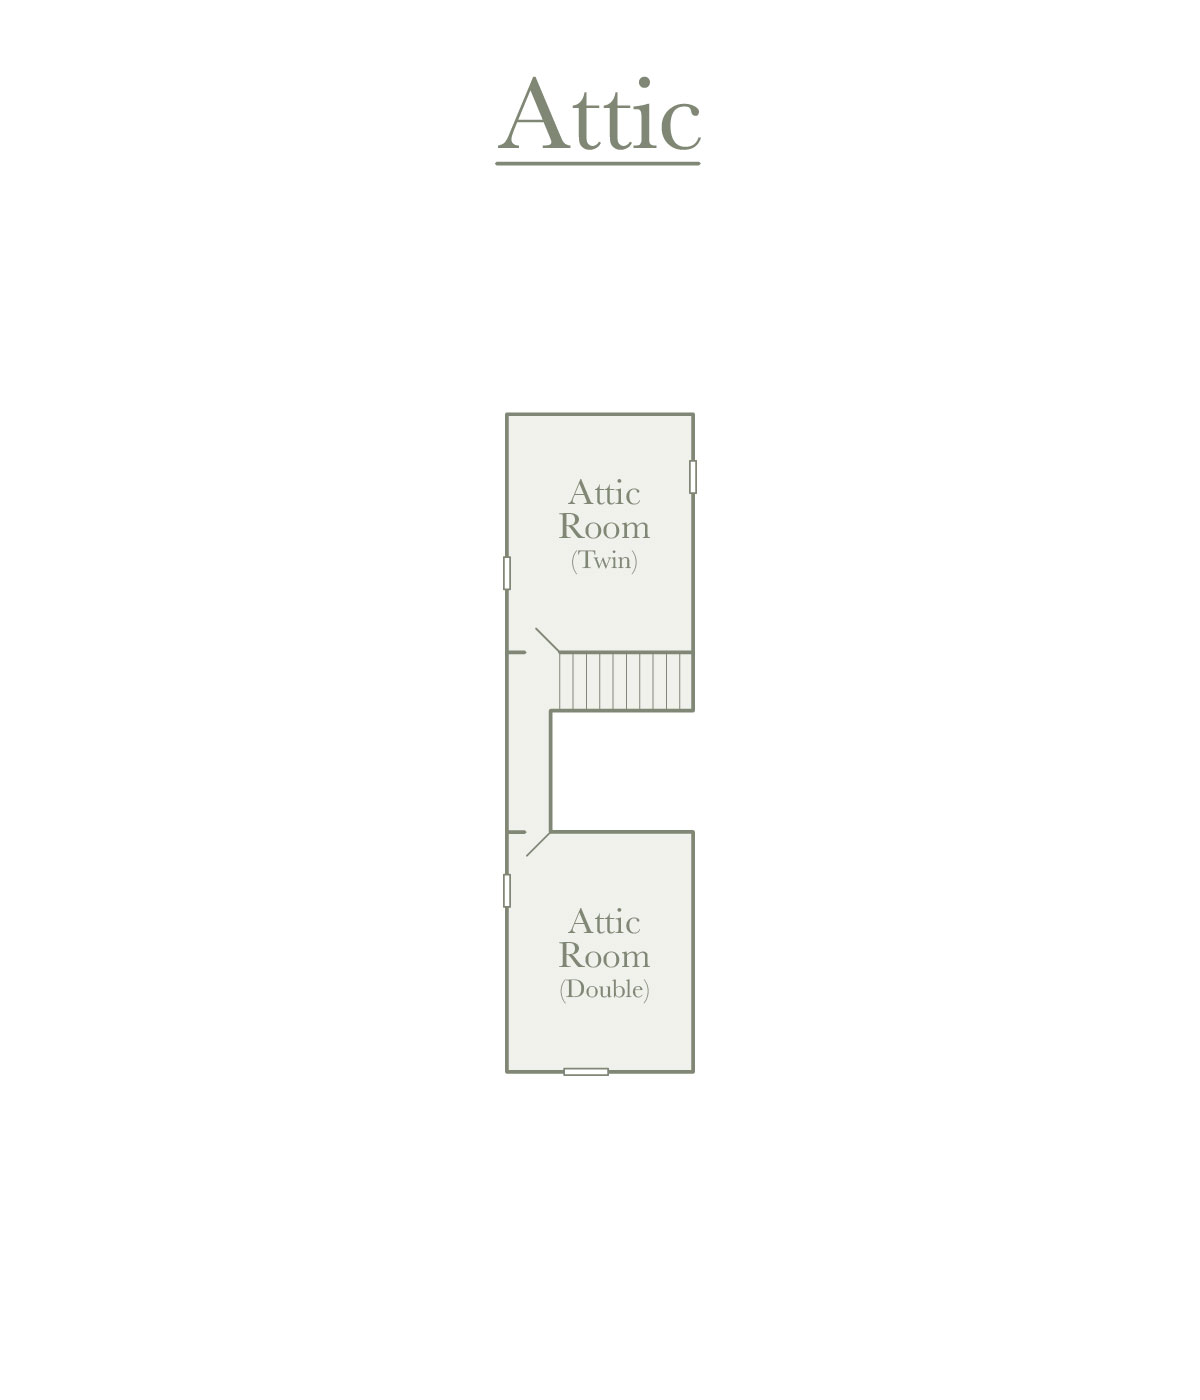 Attic Room Plan